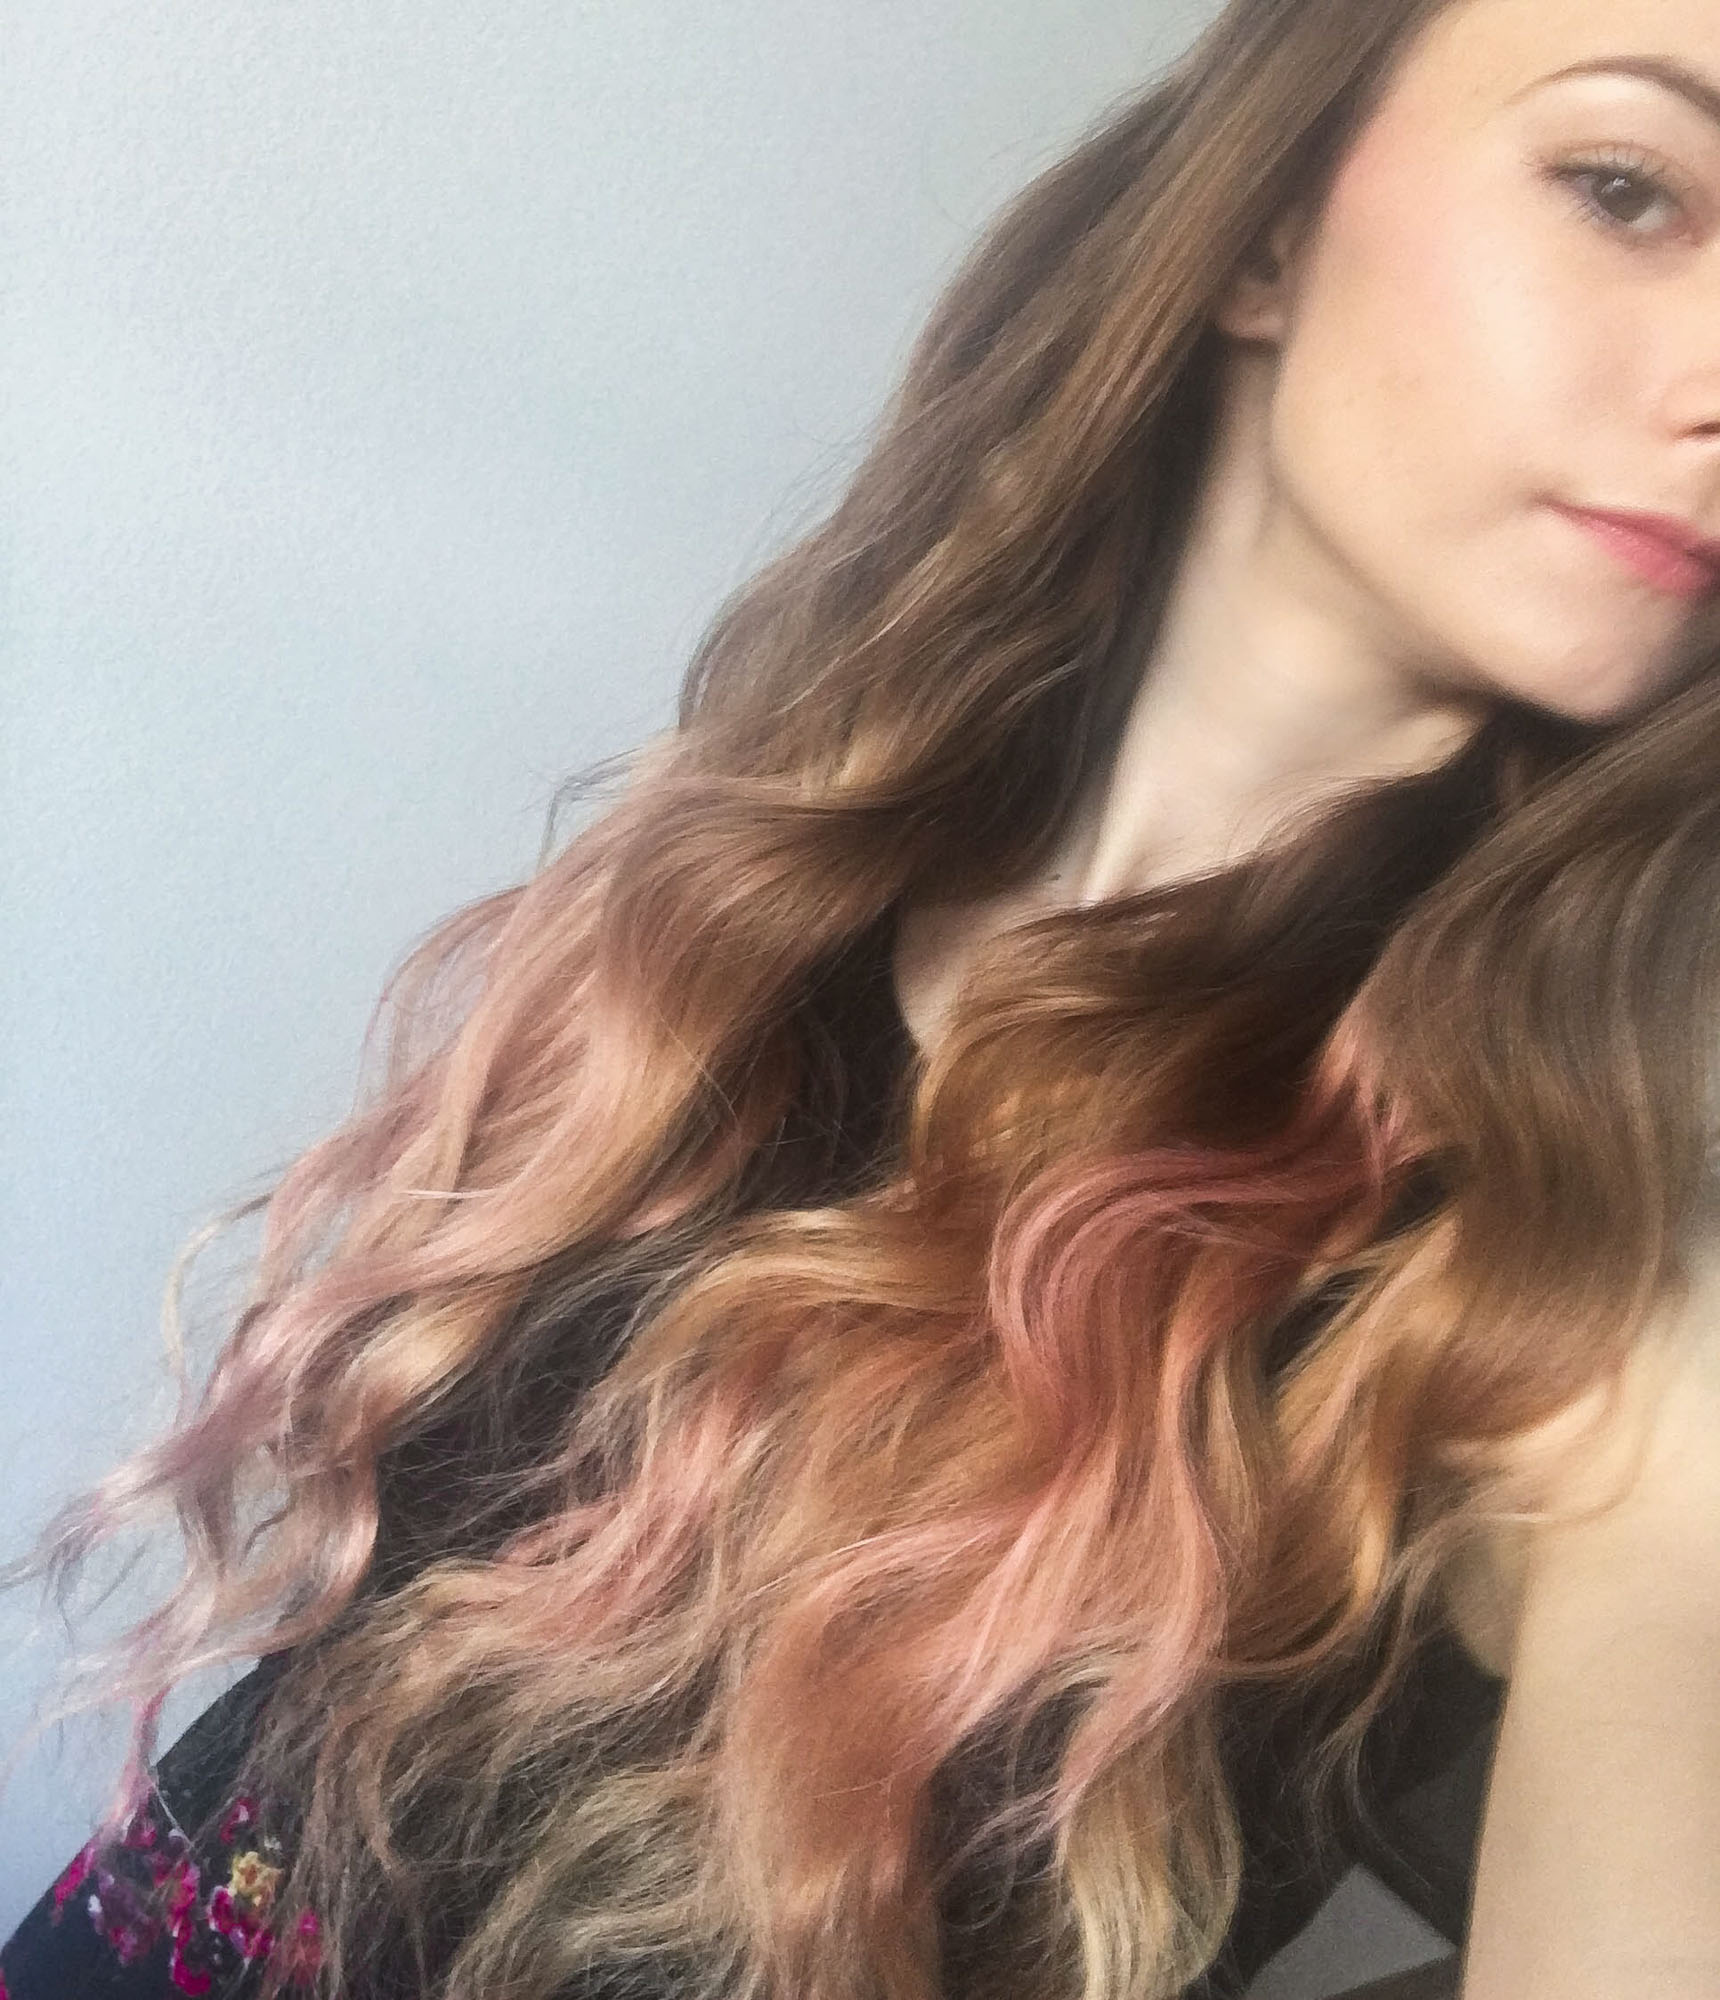 Loreal Colorista Dirty Pink L'oréal Colorista Washout Dirtypink Hair Dye Review